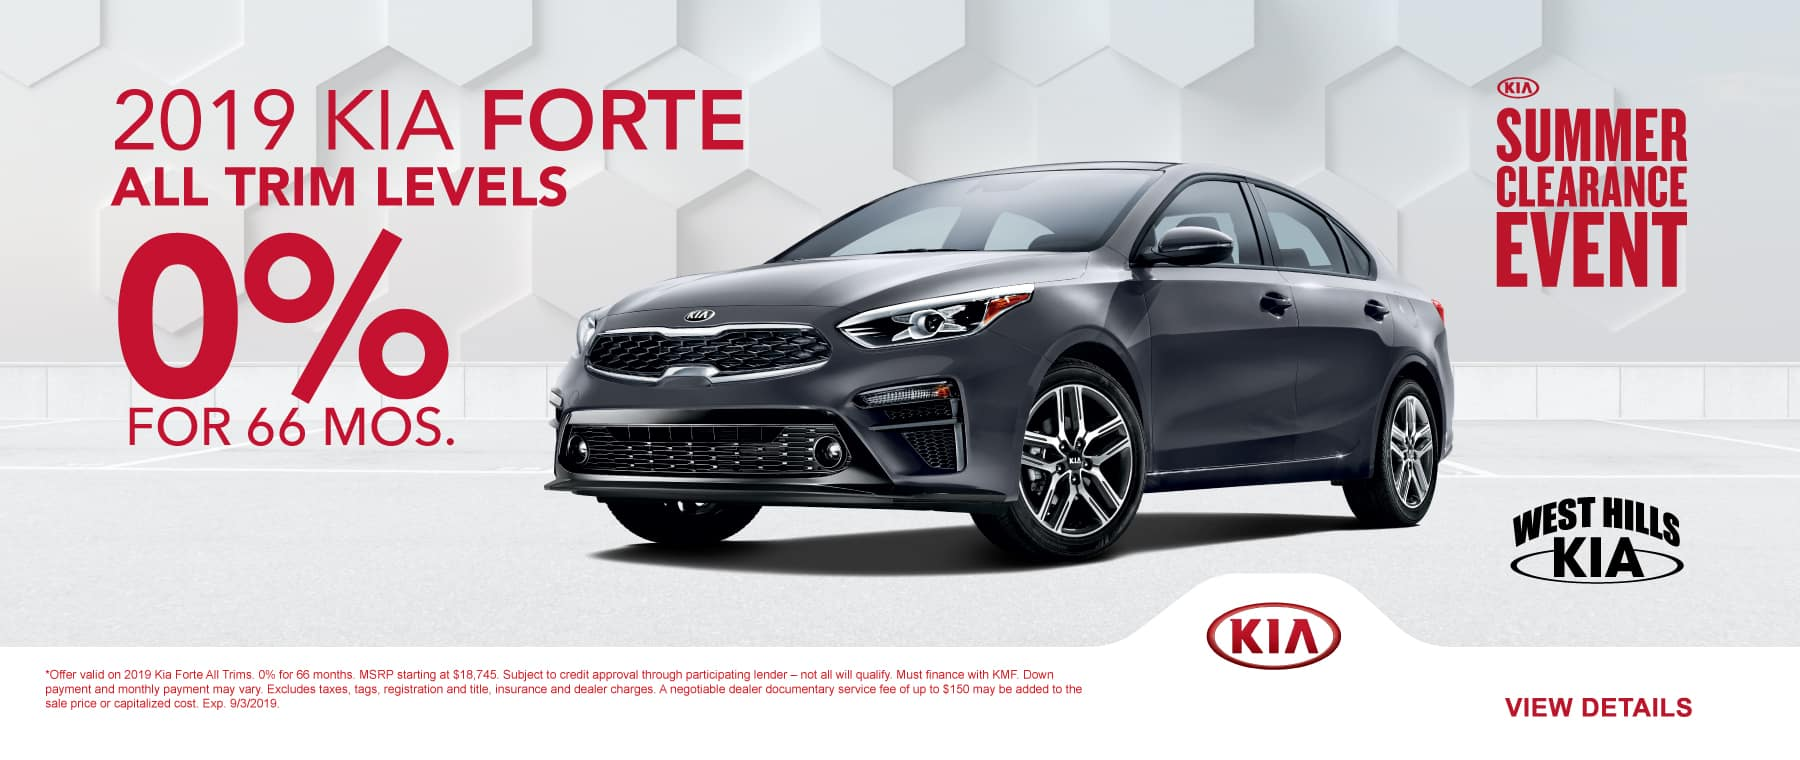 2019 Kia Forte All Trims  * 0% for 66 months   *Offer valid on 2019 Kia Forte All Trims. 0% for 66 months. MSRP starting at $18,745. Subject to credit approval through participating lender – not all will qualify. Must finance with KMF. Down payment and monthly payment may vary. Excludes taxes, tags, registration and title, insurance and dealer charges. A negotiable dealer documentary service fee of up to $150 may be added to the sale price or capitalized cost. Exp. 9/3/2019.